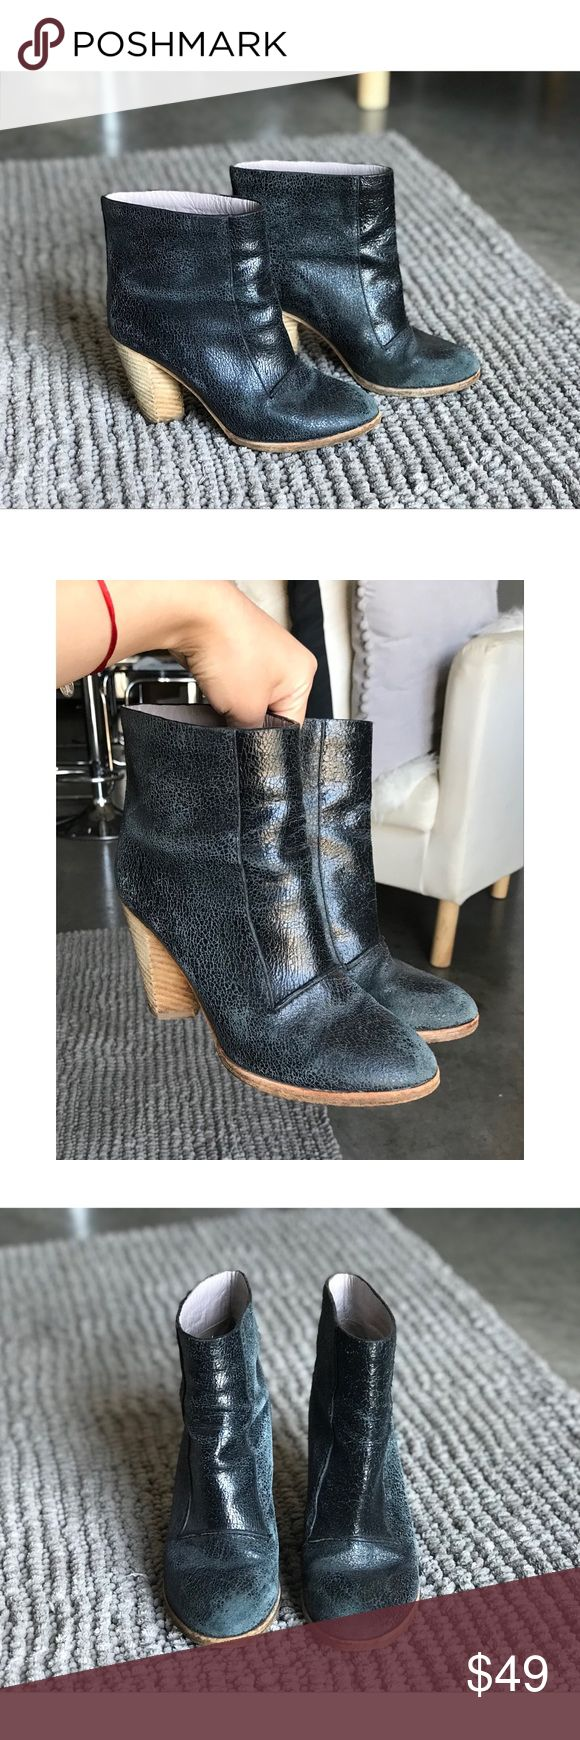 Marc by Marc Jacobs Booties Cute blue leather booties with wooden heel. Super comfy. Used with plenty of life left. Marc By Marc Jacobs Shoes Ankle Boots & Booties